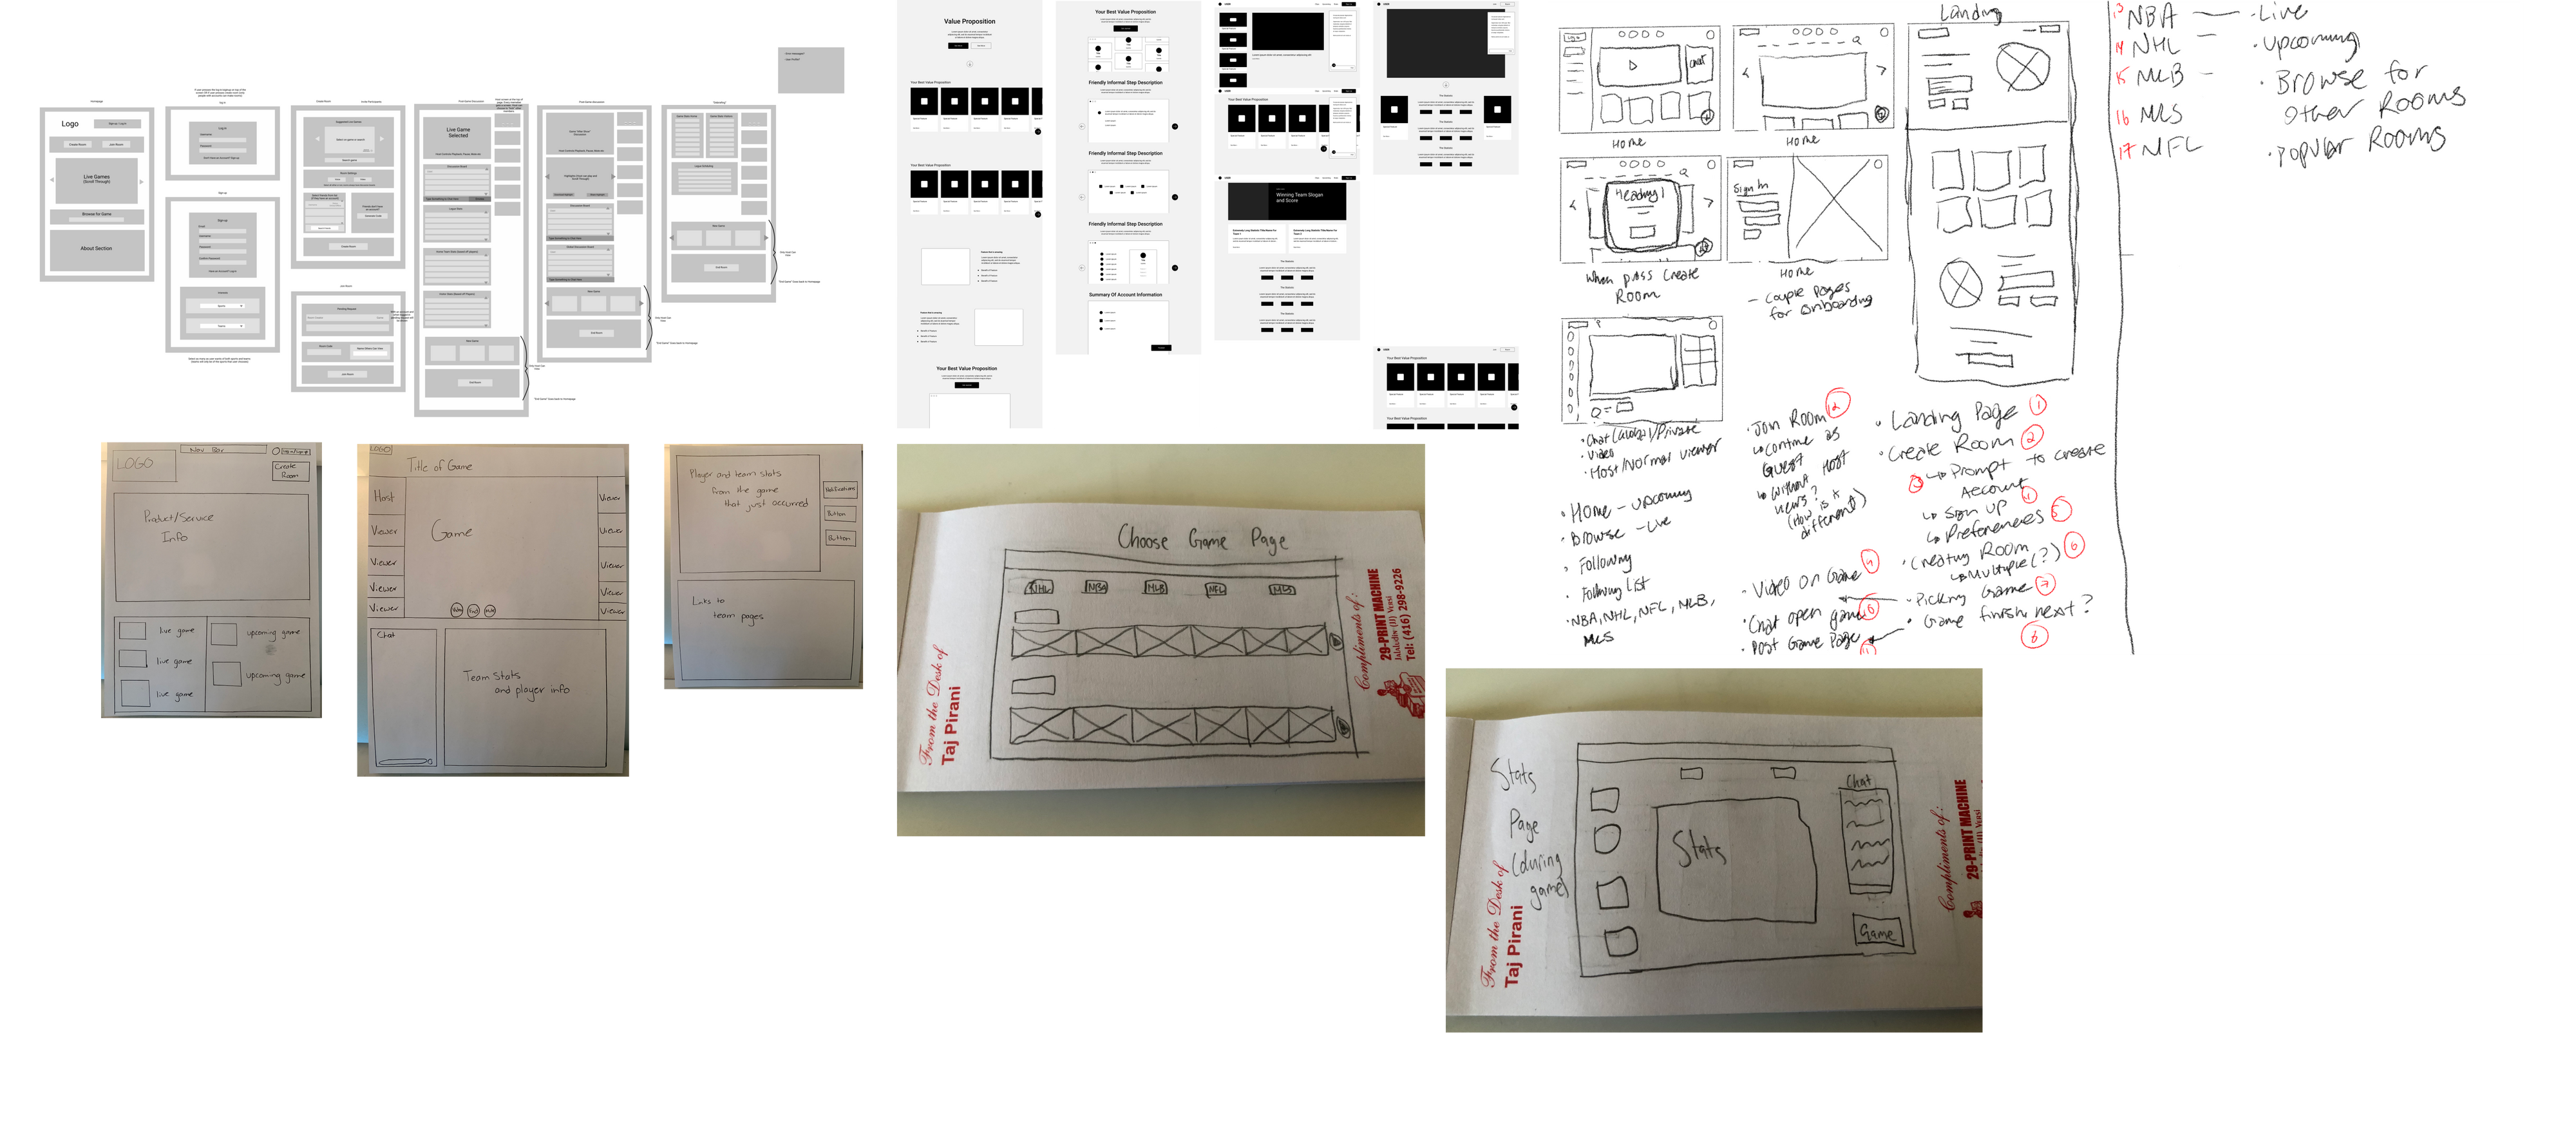 An overview of all the mockup wireframes we made.